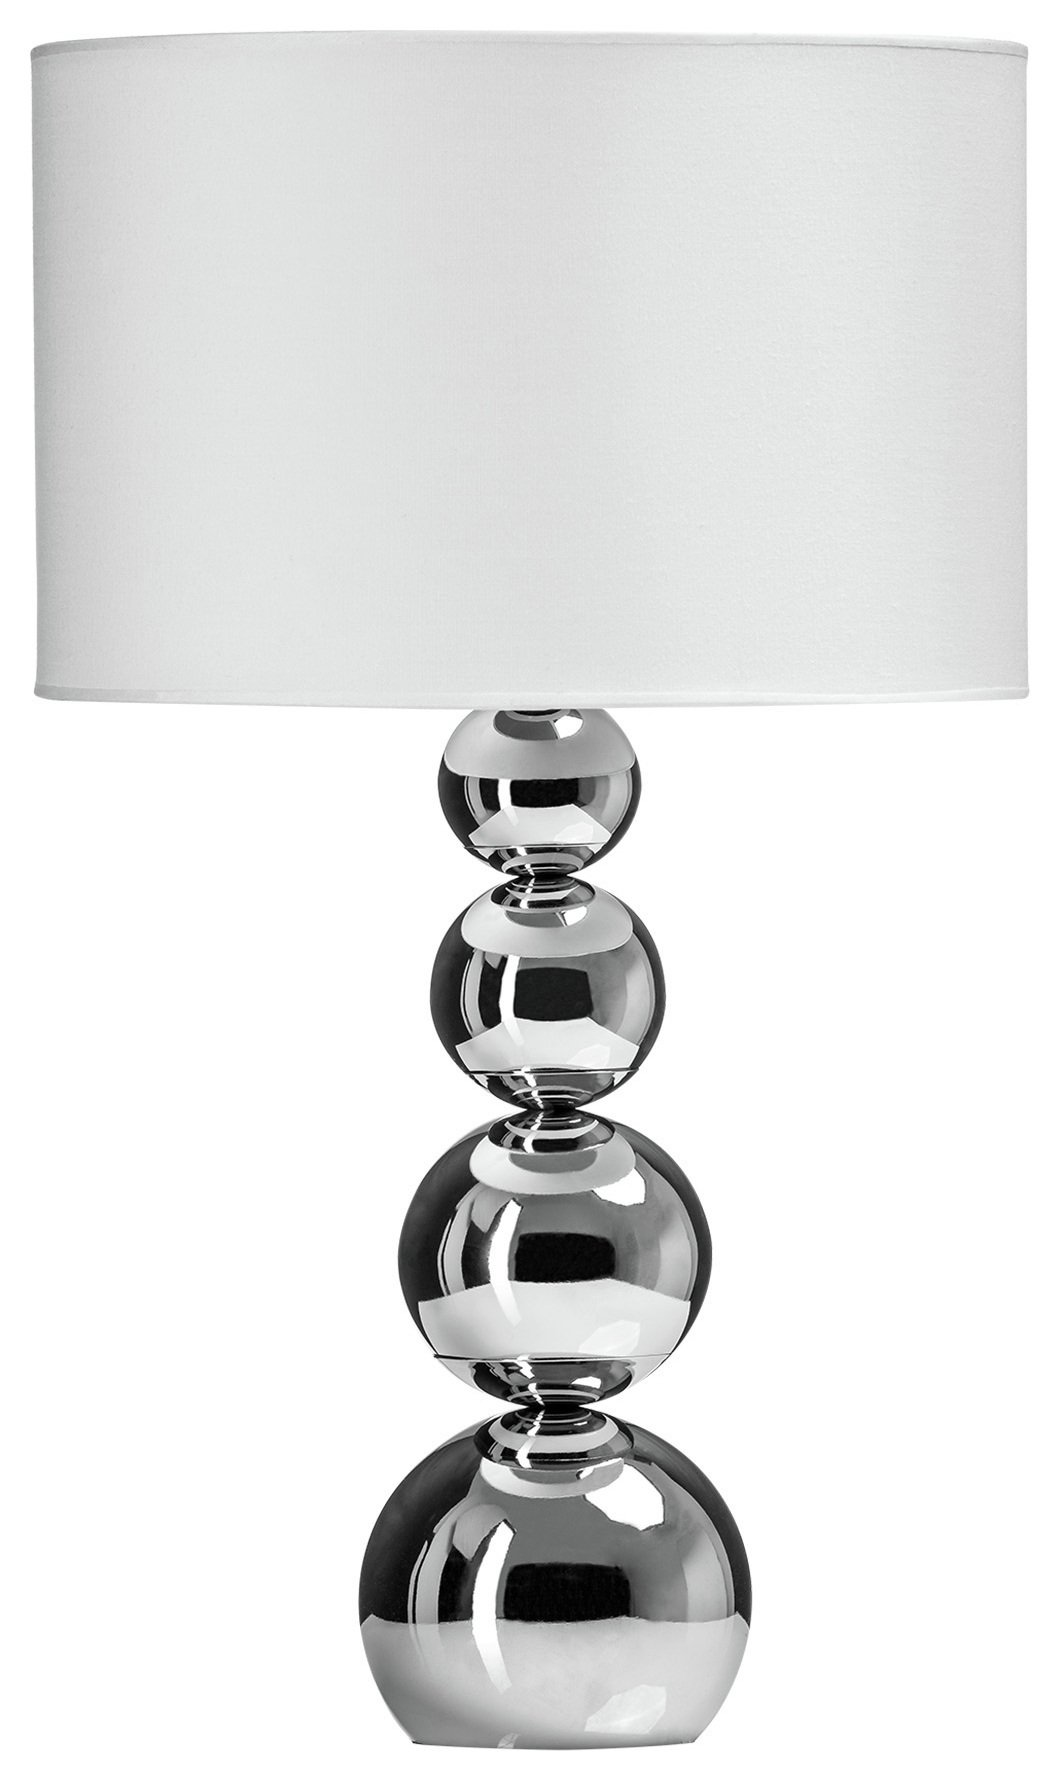 Image of Cameo Touch Table Lamp with White Shade.